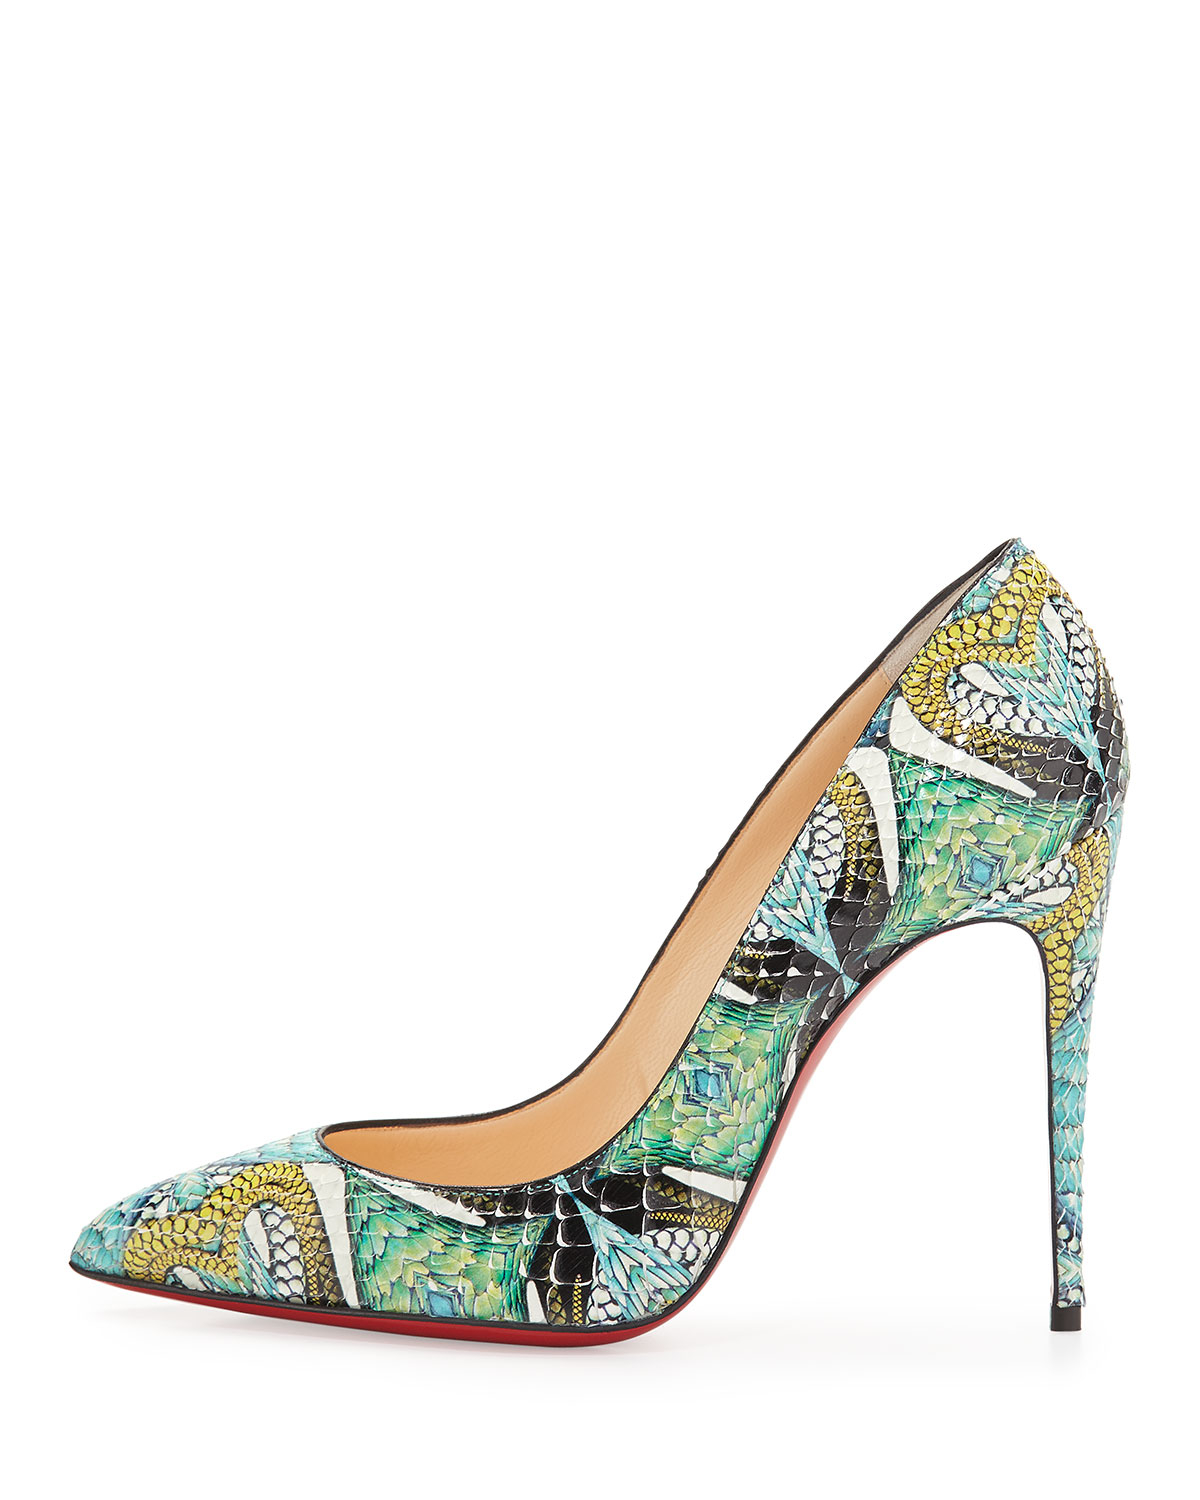 replicas shoes for men - christian louboutin pointed-toe So Kate pumps Green and multicolor ...